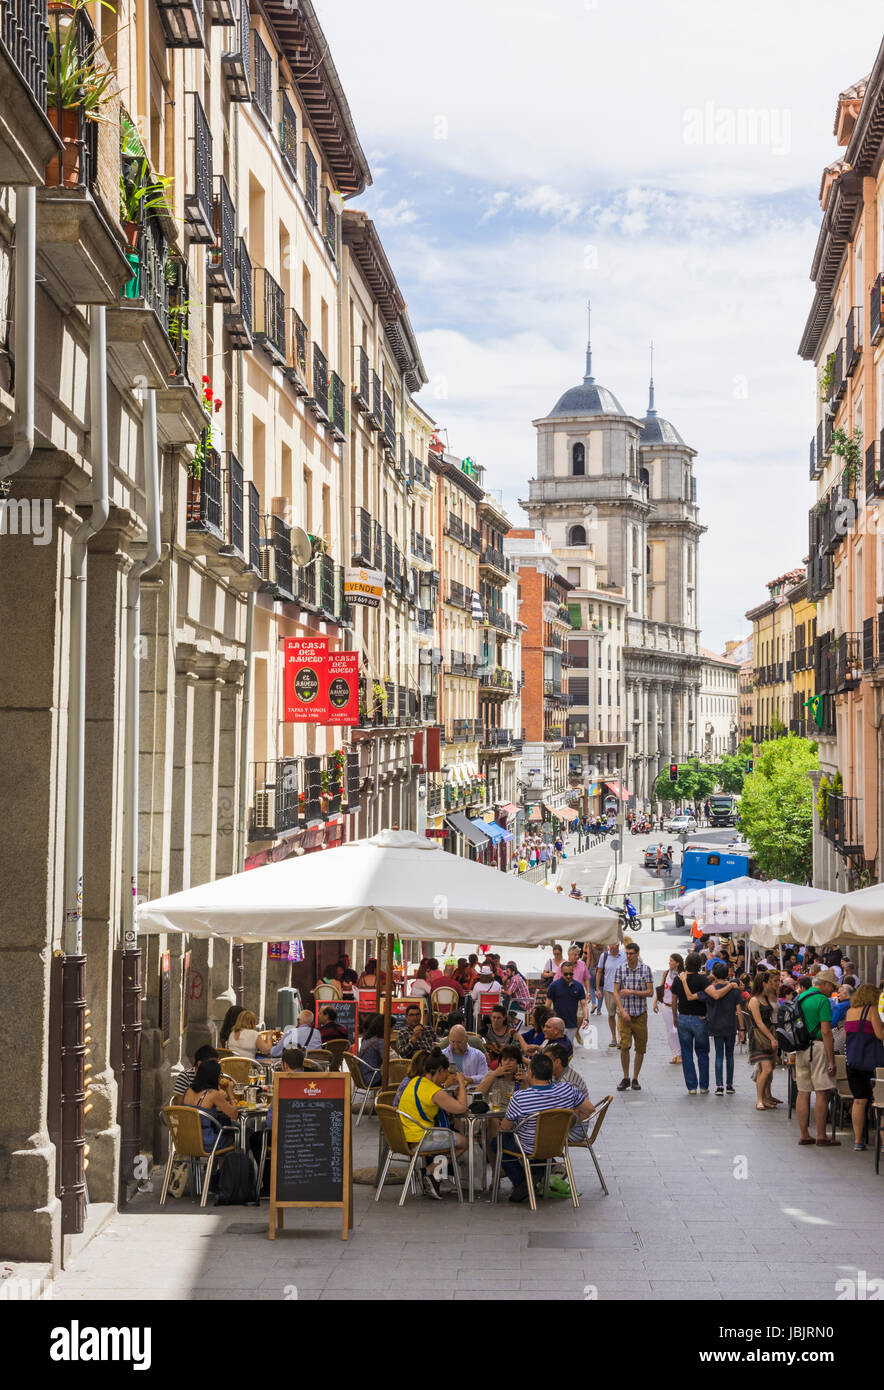 Busy tapas cafes and restaurants along Calle de Toldeo looking towards the imposing Basilica de San Isidro, Madrid, - Stock Image